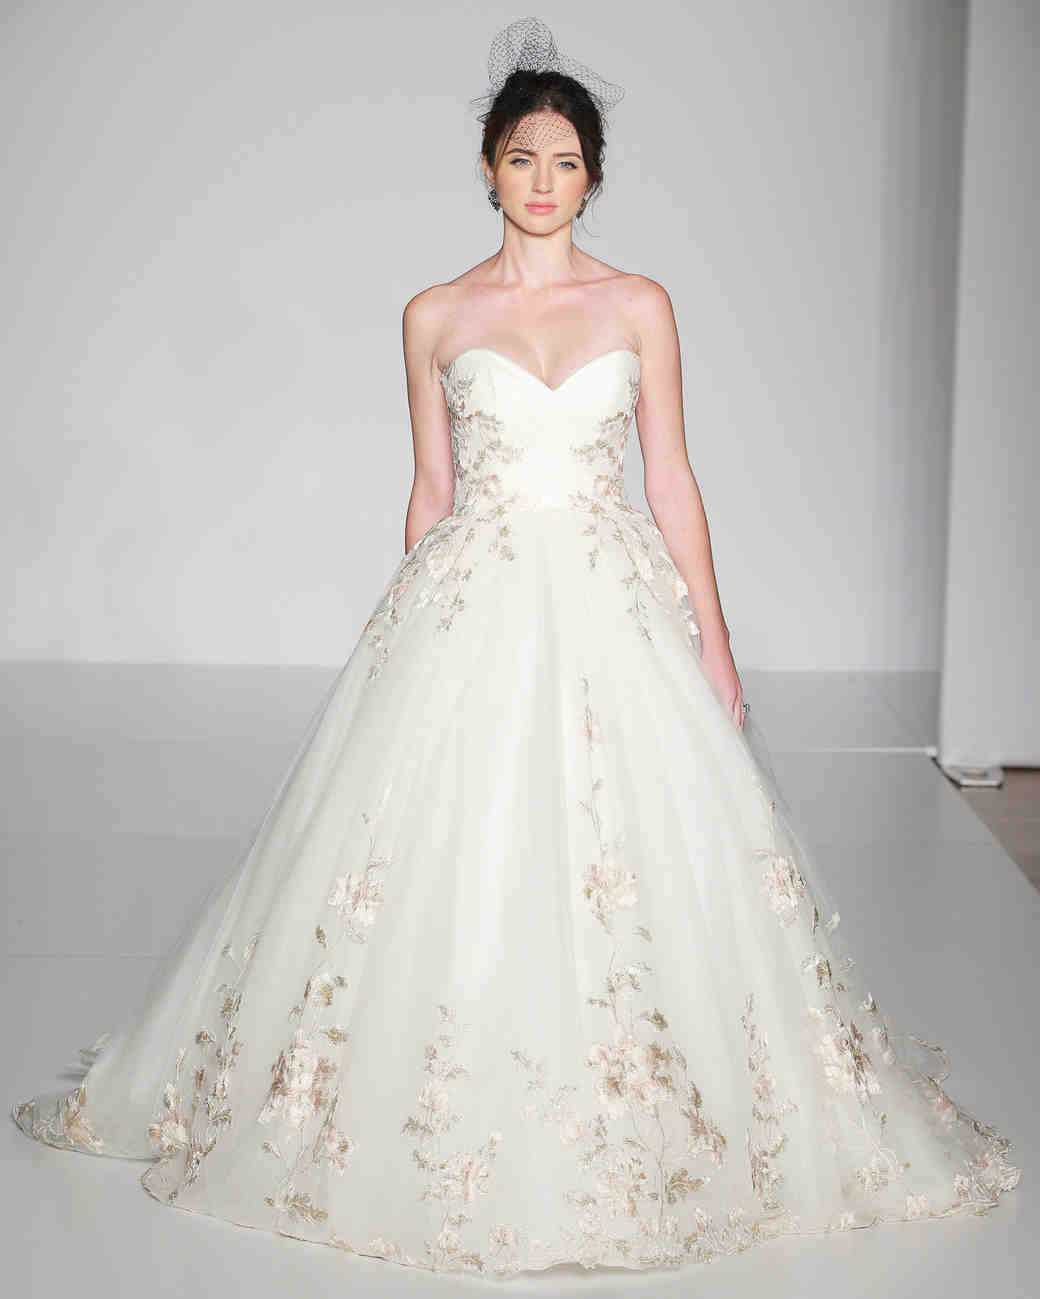 Flower Floral Wedding Gowns : Ultra romantic floral wedding dresses martha stewart